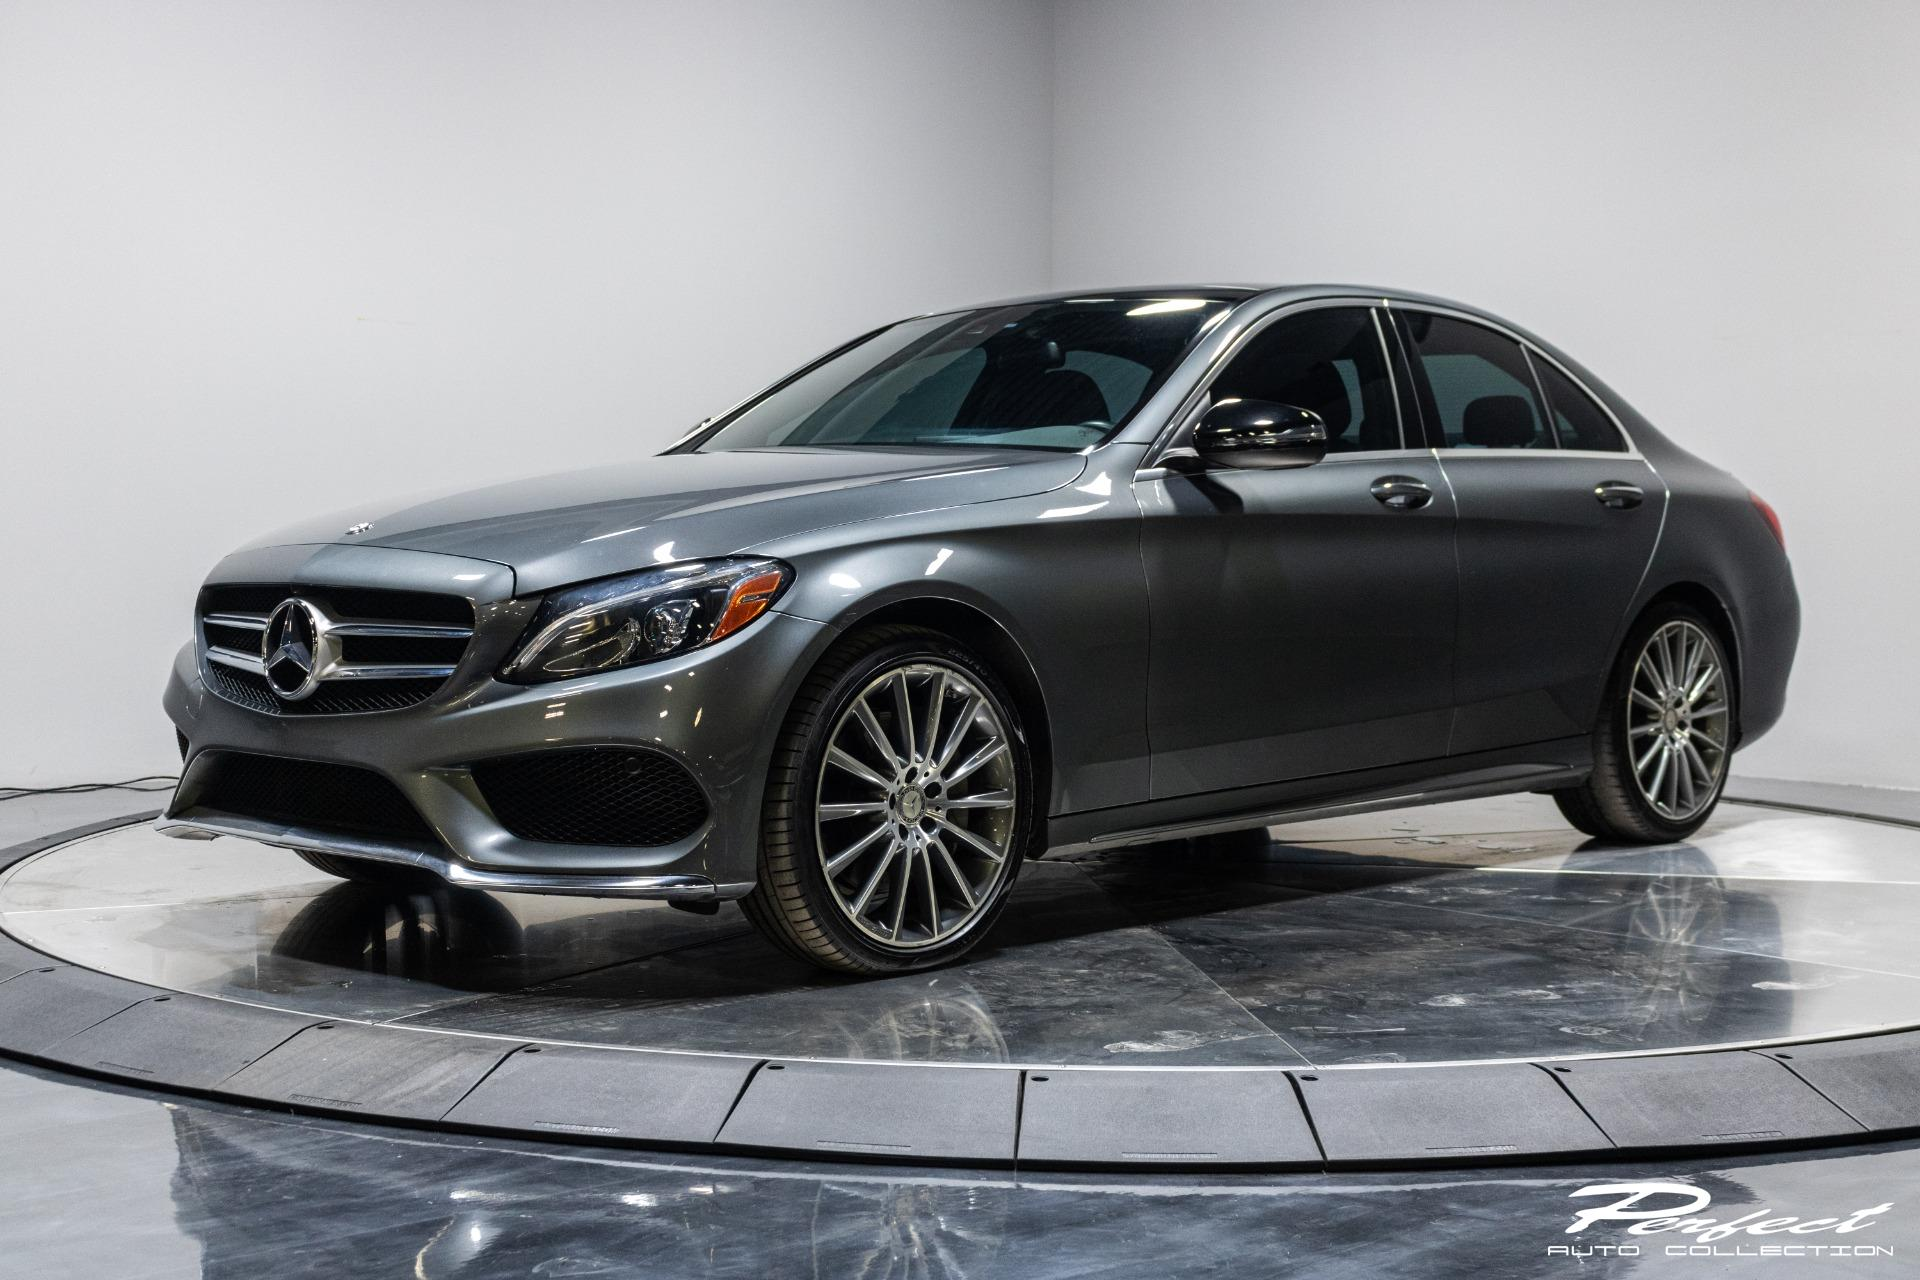 Used 2017 Mercedes-Benz C-Class C 300 4MATIC for sale Sold at Perfect Auto Collection in Akron OH 44310 1